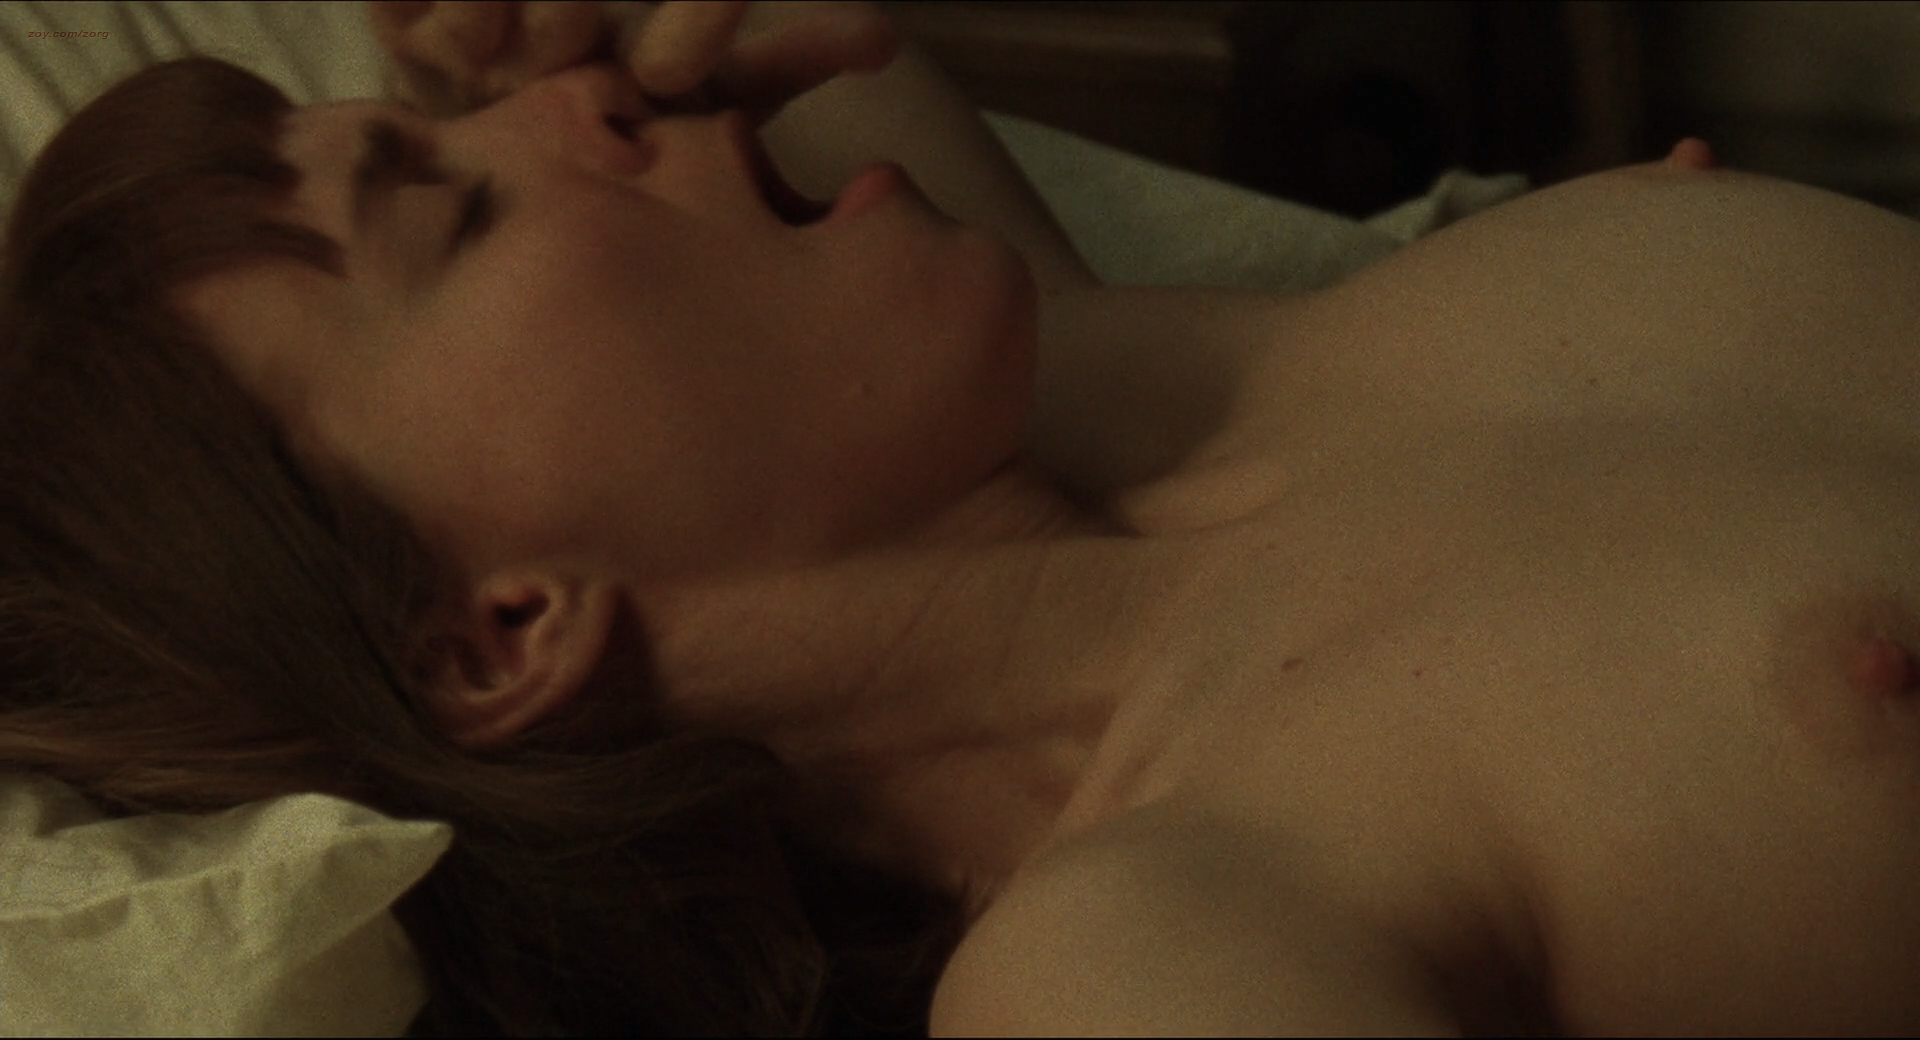 Cate Blanchett nude and Rooney Mara nude topless and lesbian sex - Carol (2015) HD 1080p BluRay (3)